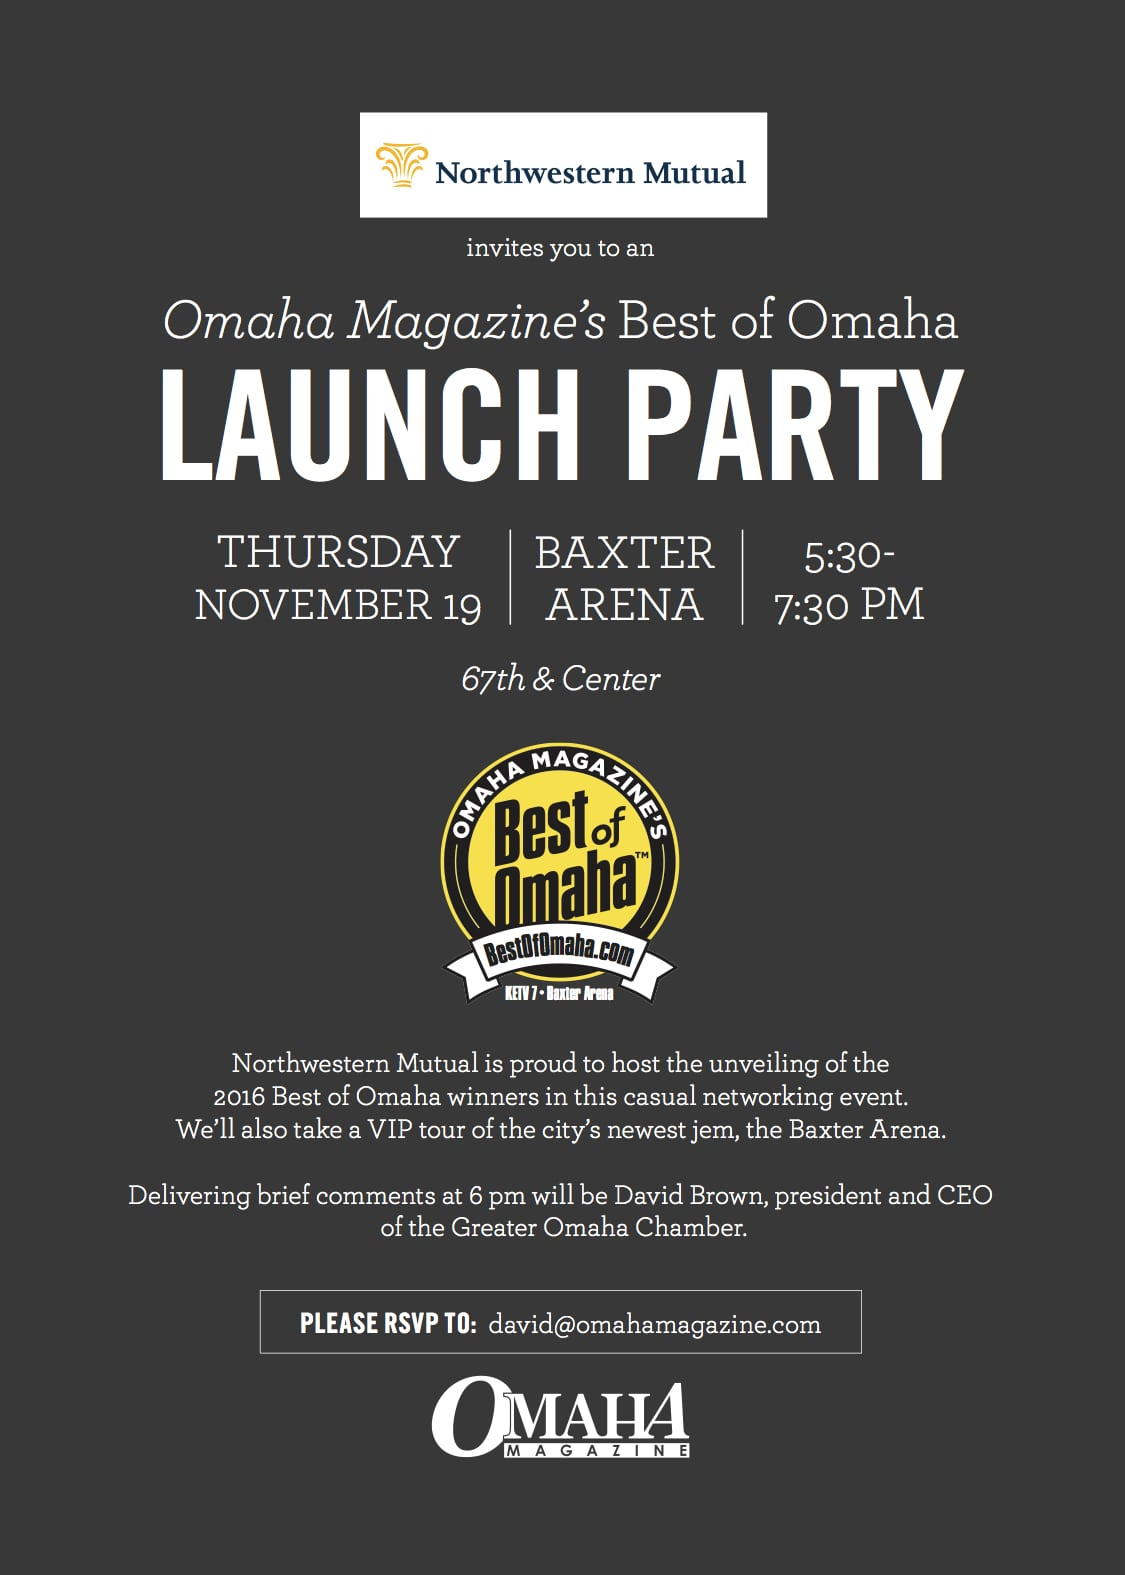 Launch Party Invitation Launch Party Invitation By Way Of Using An